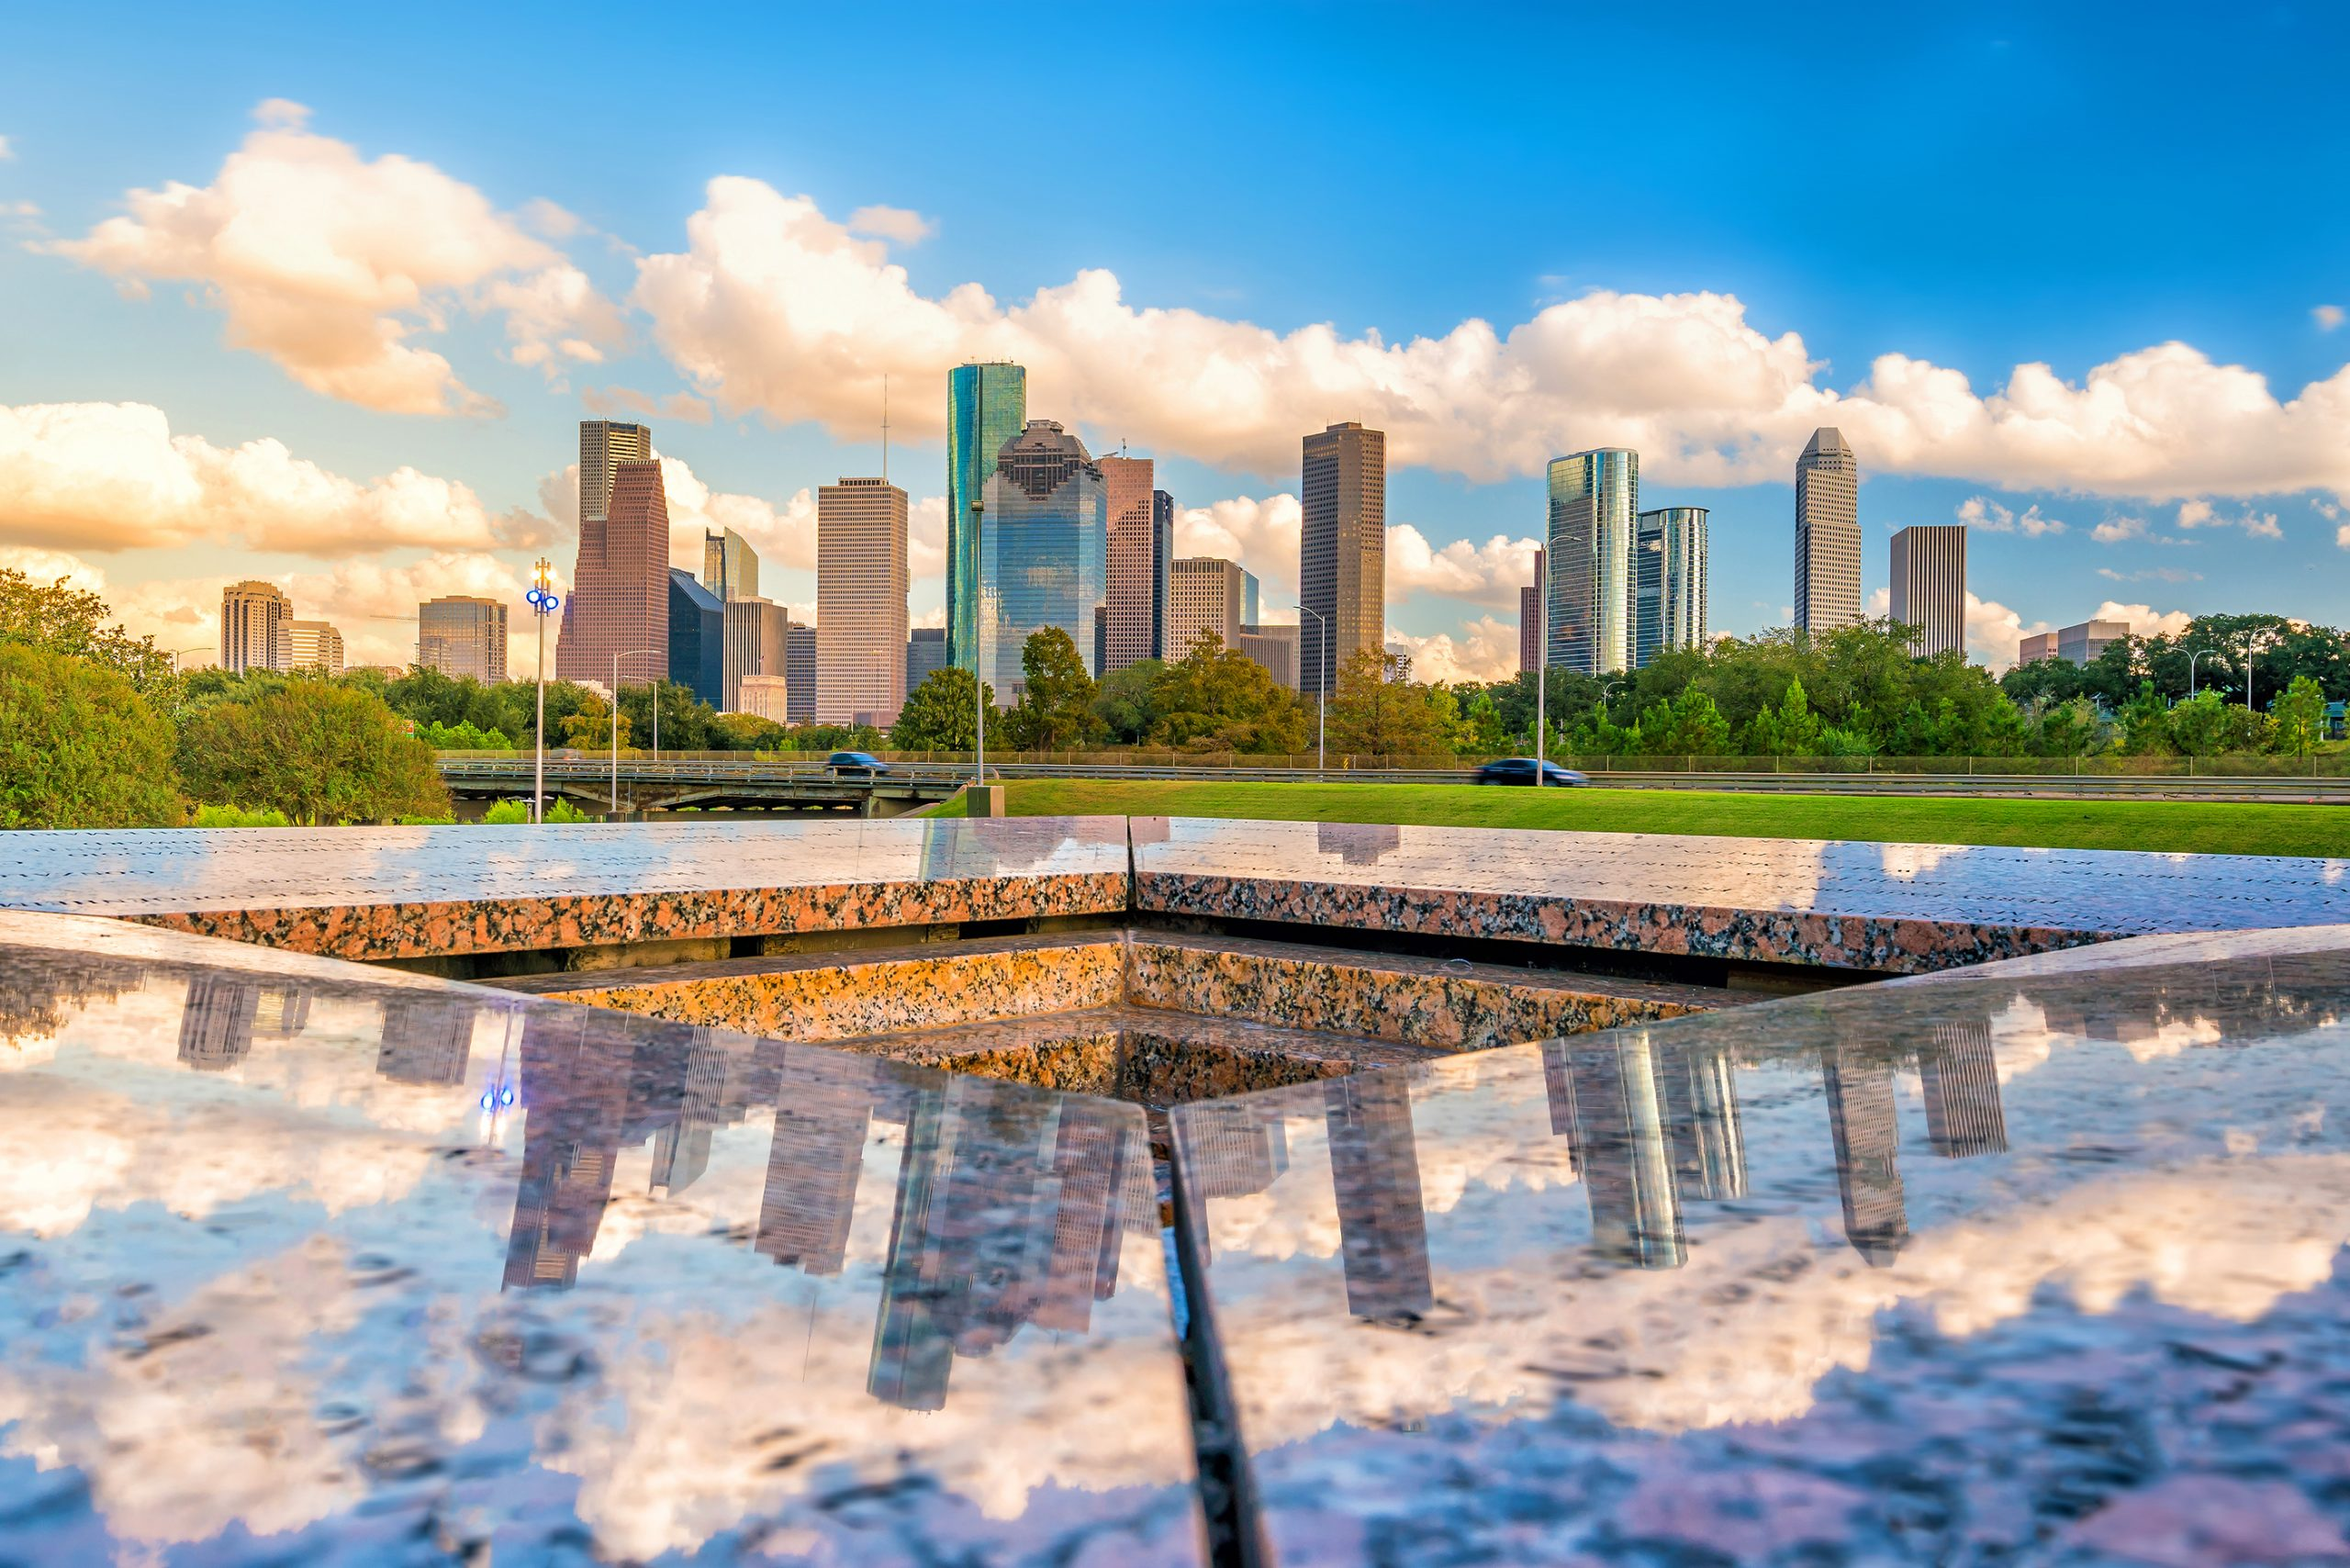 downtown houston skyline as seen from across a reflecting pool, best quotes about houston sayings